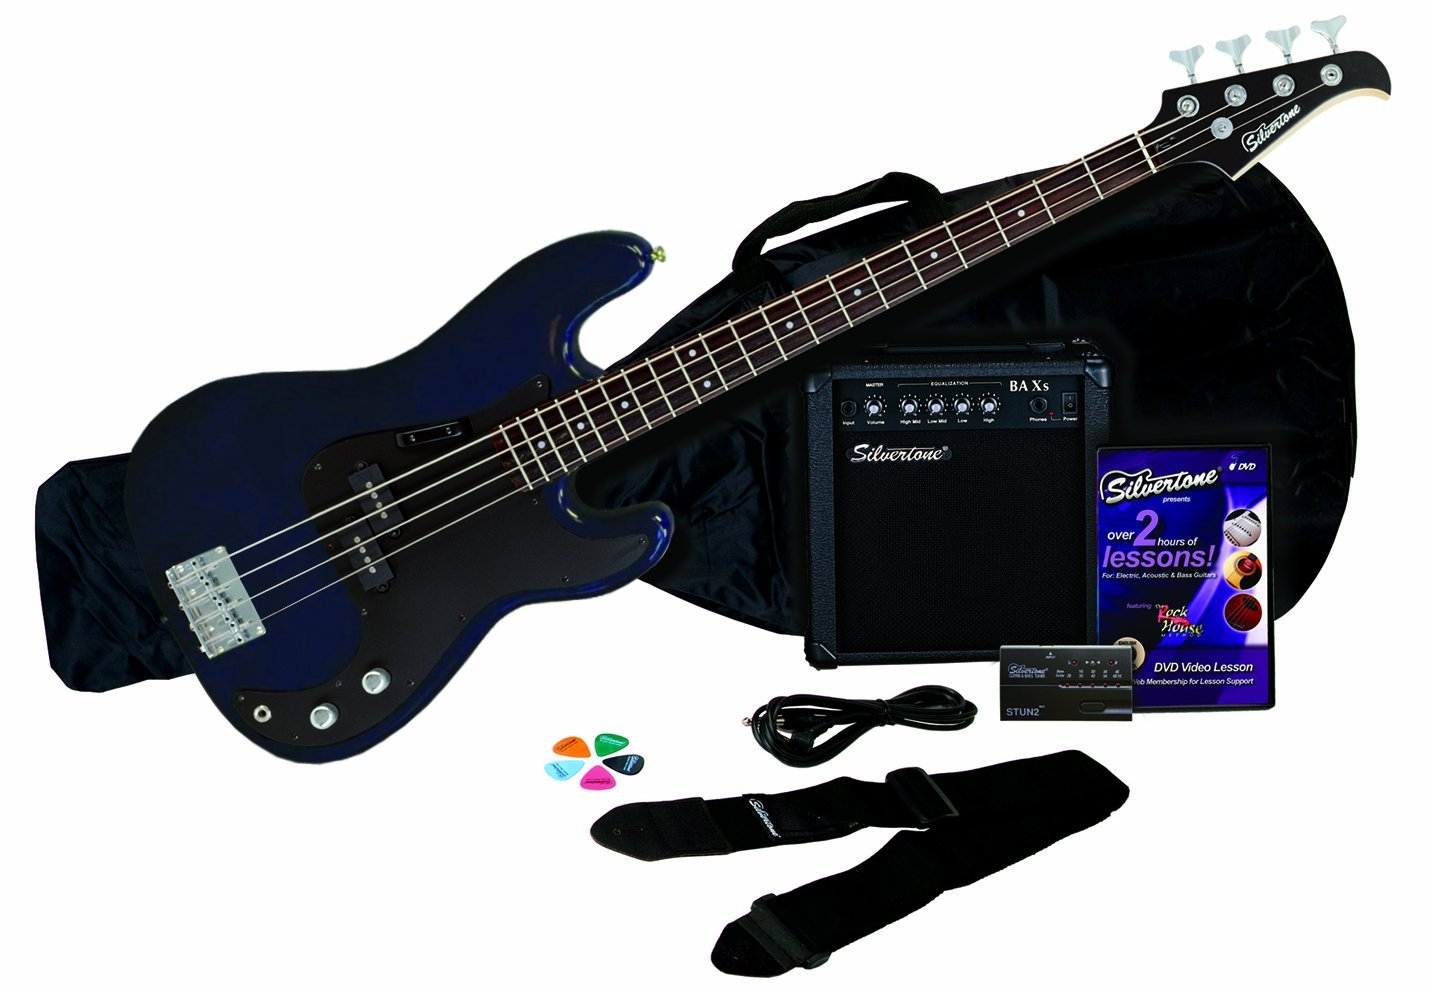 Silver Tone Electric Guitar Blue Not Lossing Wiring Diagram Silvertone 1448 Lb11 Bass And Amp Package Review Best Guitars Hub Esp Viper